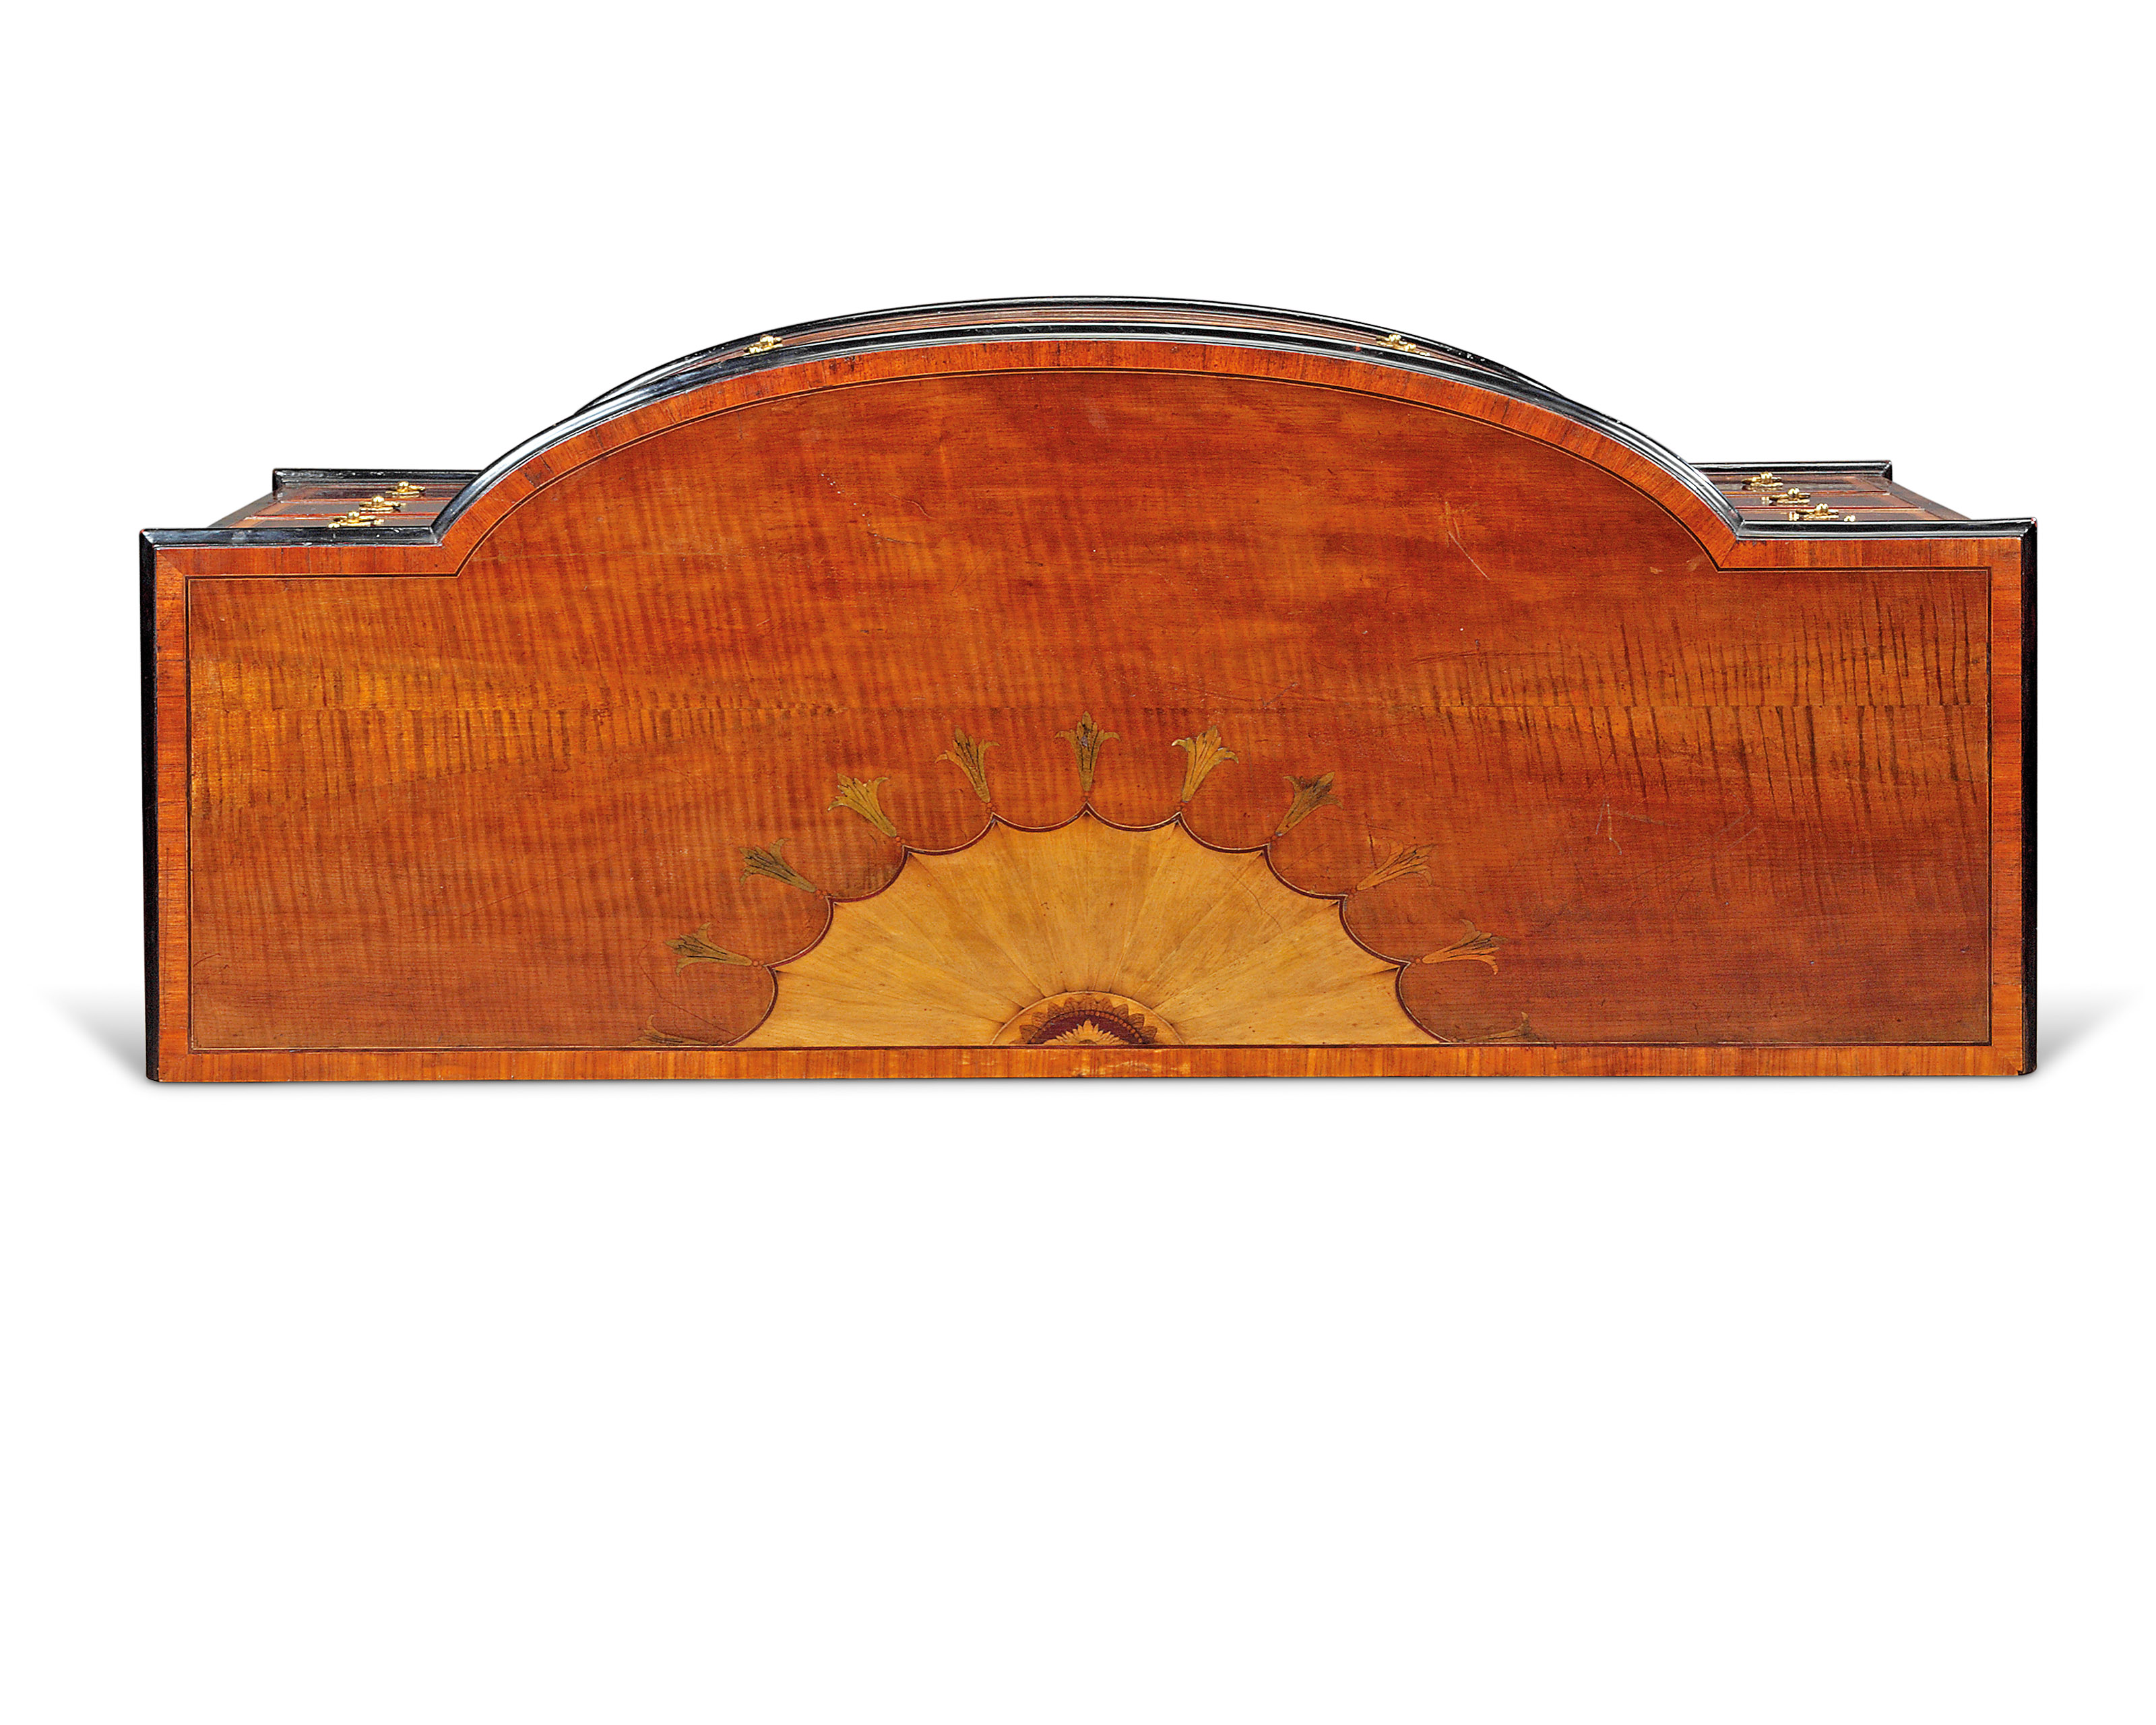 A GEORGE III HAREWOOD, ROSEWOOD-CROSSBANDED AND SATINWOOD-INLAID BOWFRONT COMMODE